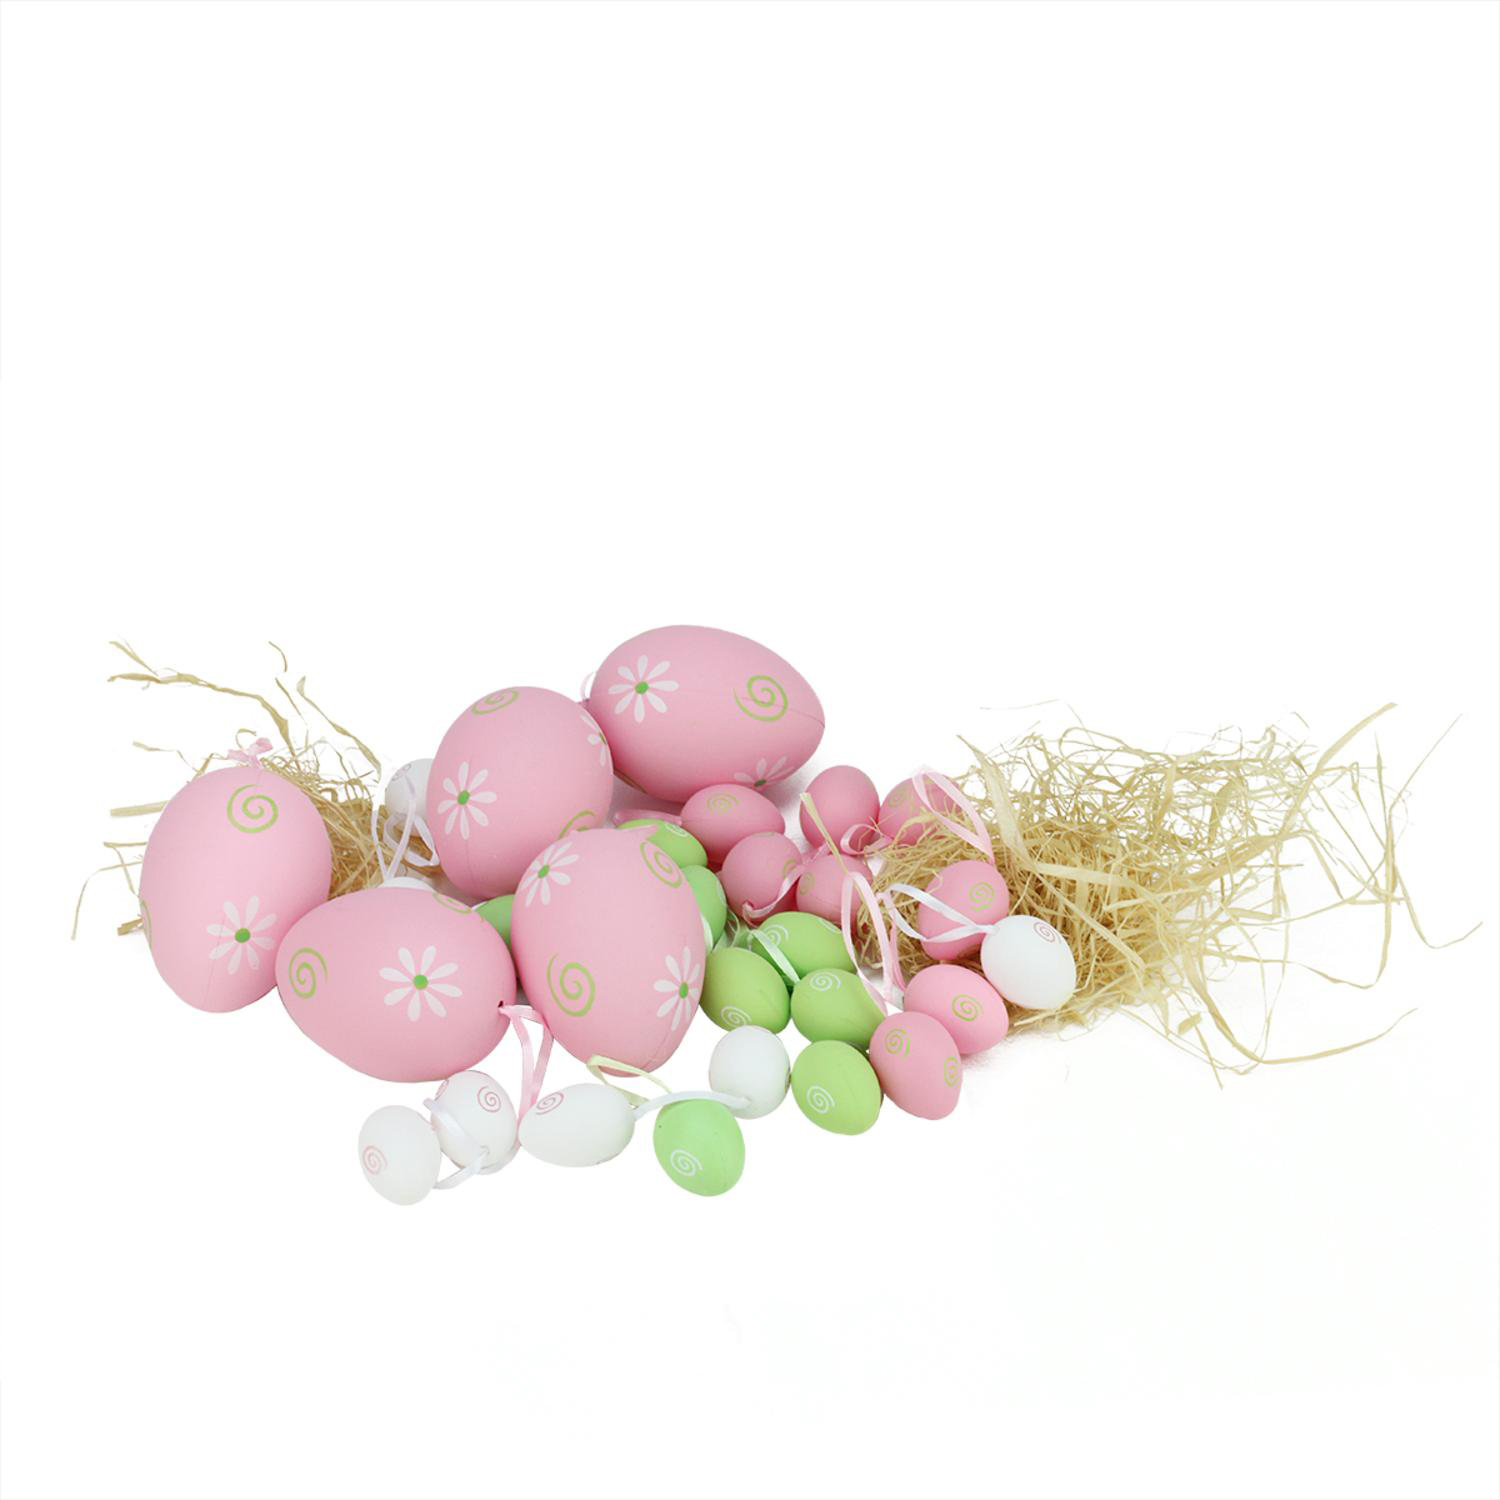 Pastel Pink, Green & White Painted Floral Easter Egg Ornaments Set of 29